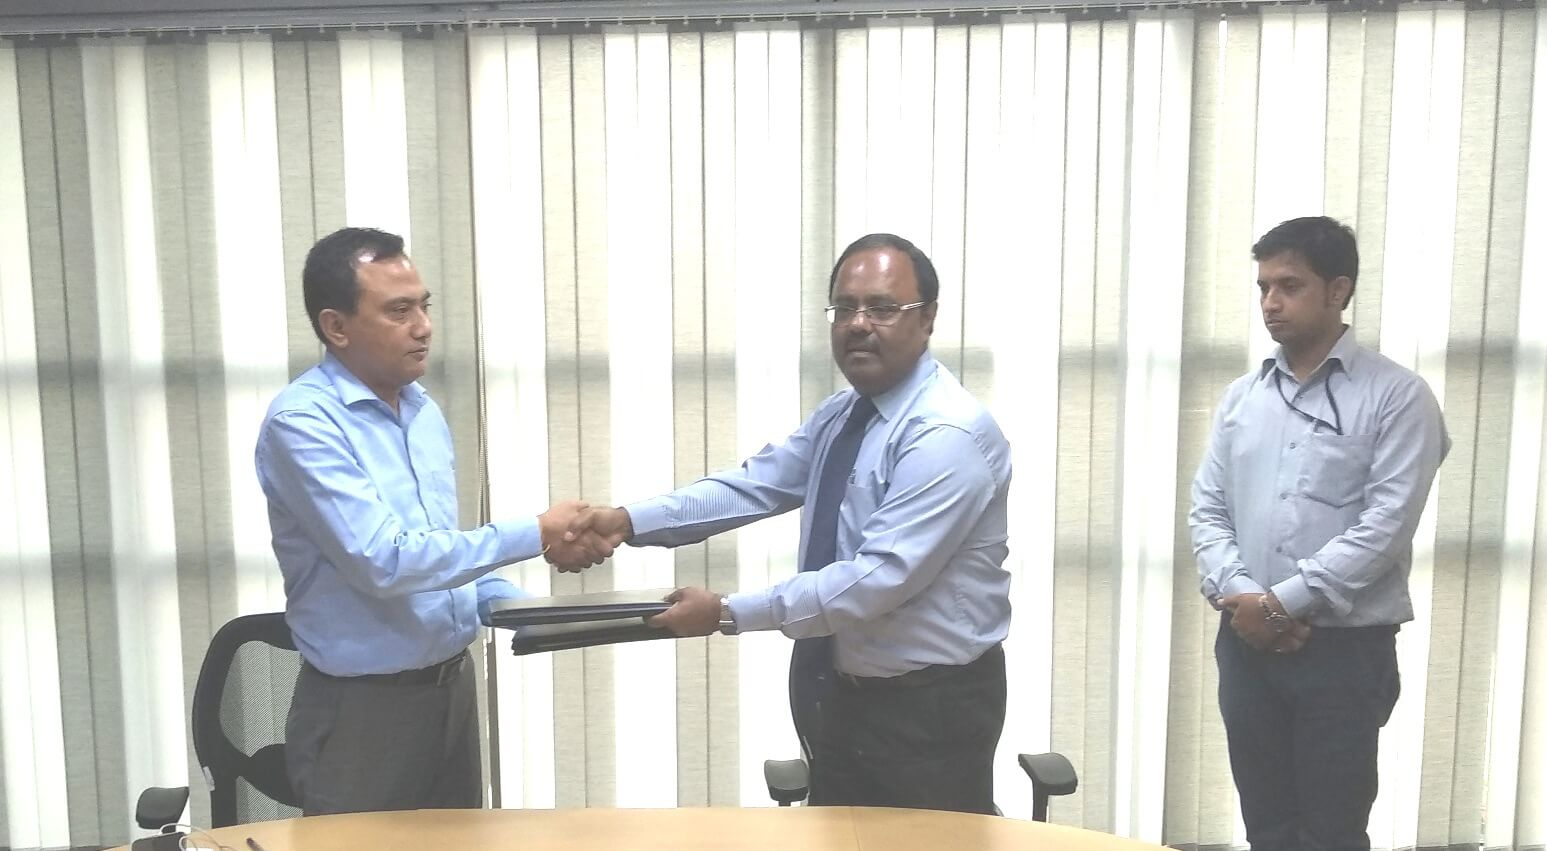 Numaligarh Refinery Limited Signs Memorandum of Agreement with Government for Developing Golaghat ITI